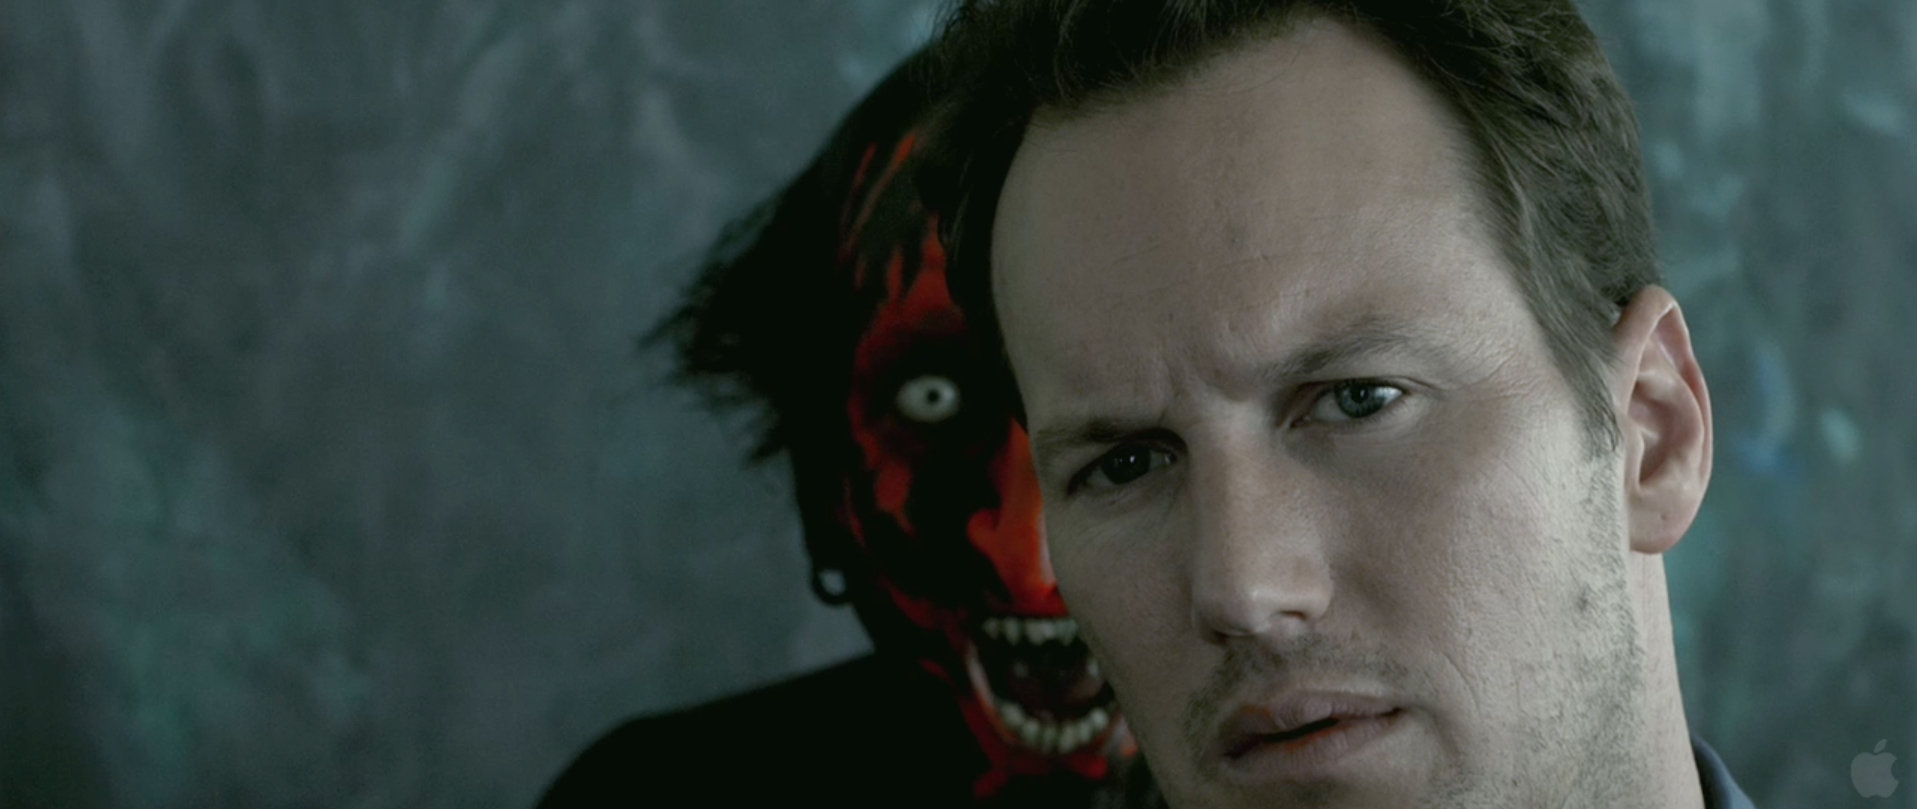 Leigh Whannell To Direct Insidious Chapter 3 Release